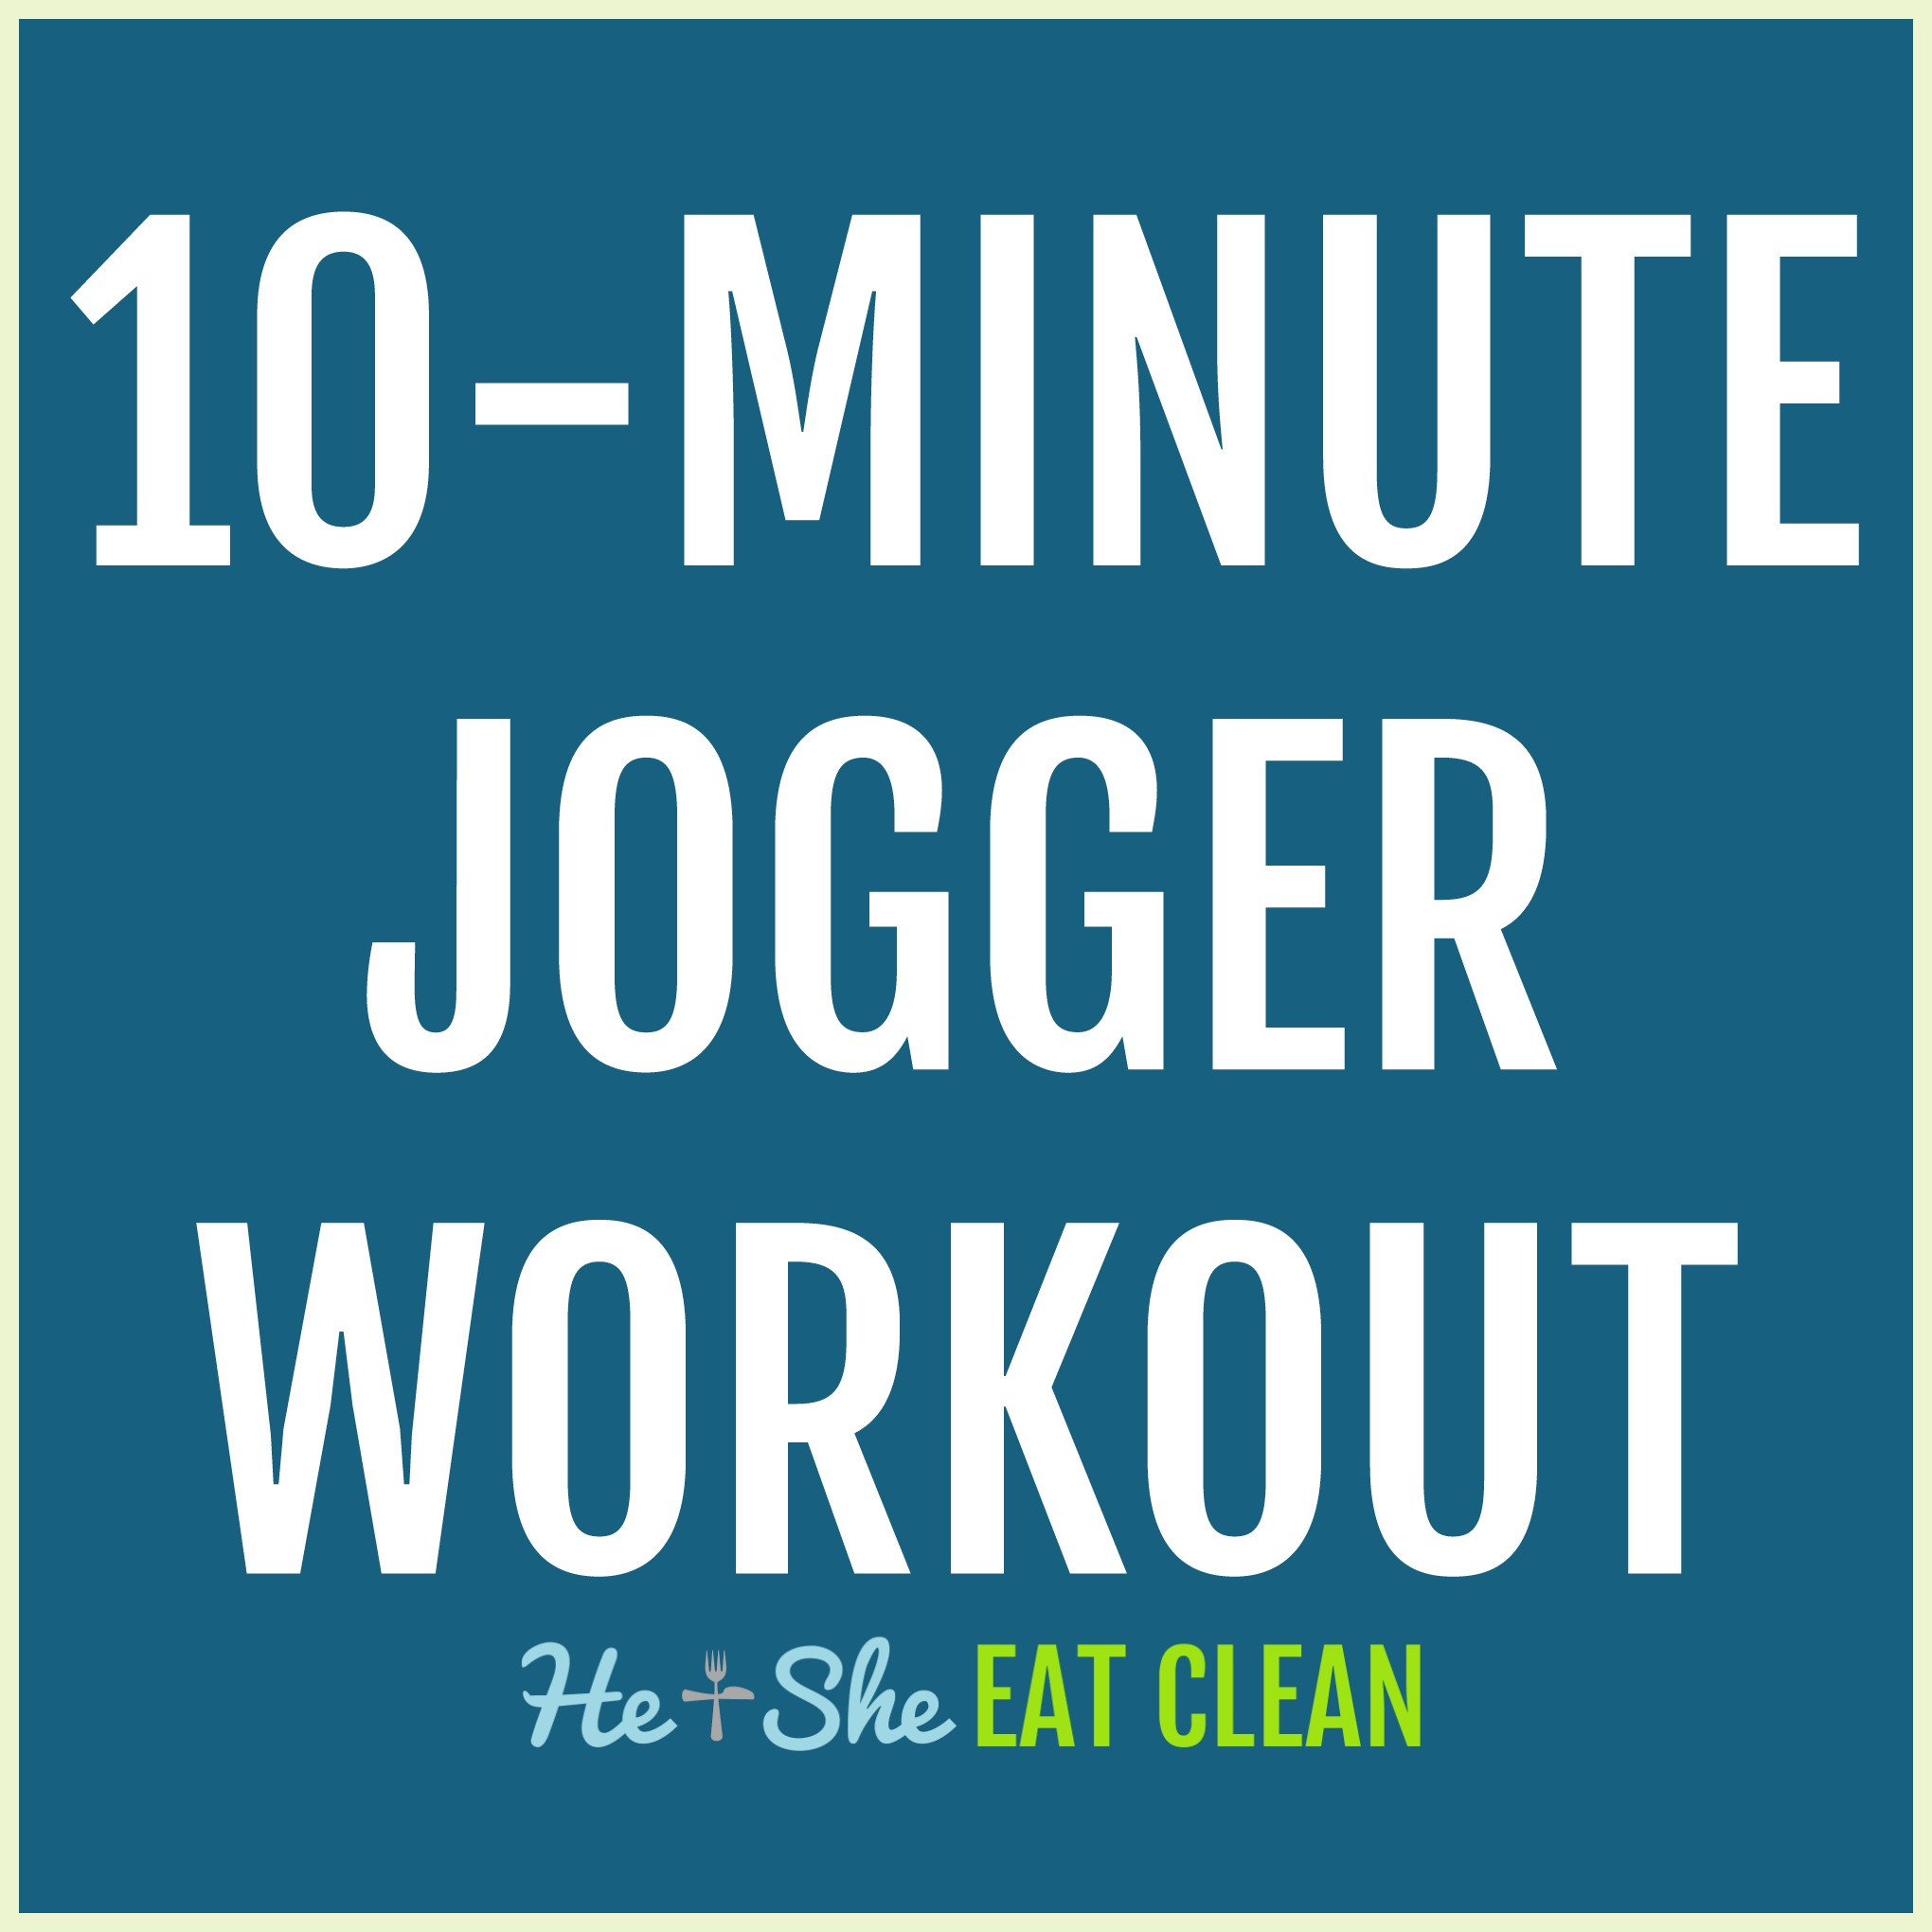 10-Minute Jogger Workout